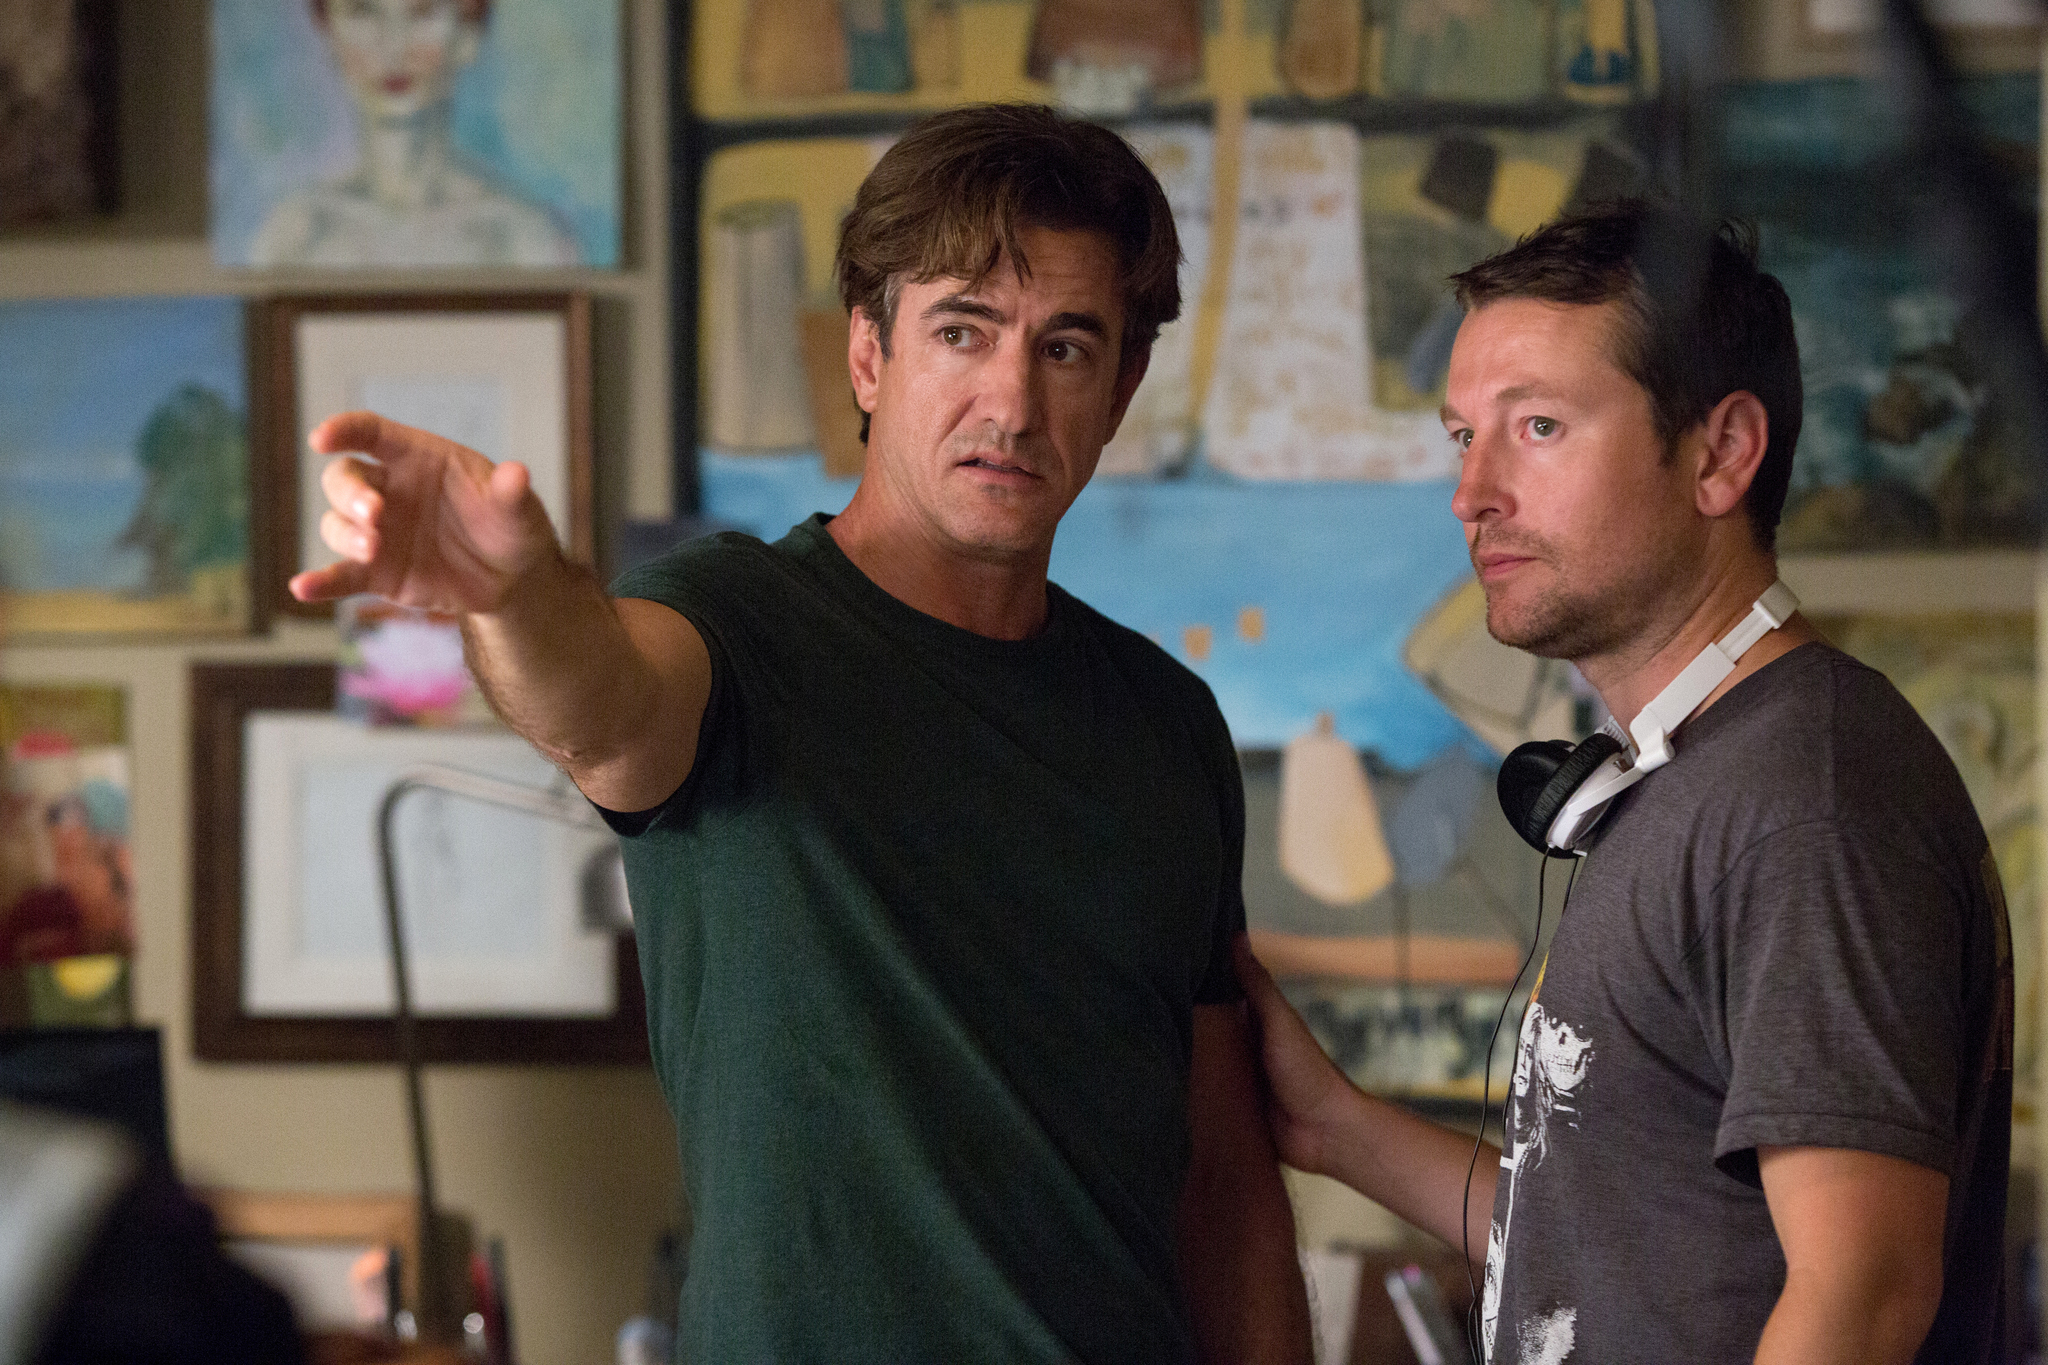 Dermot Mulroney and Leigh Whannell in Insidious: Chapter 3 (2015)